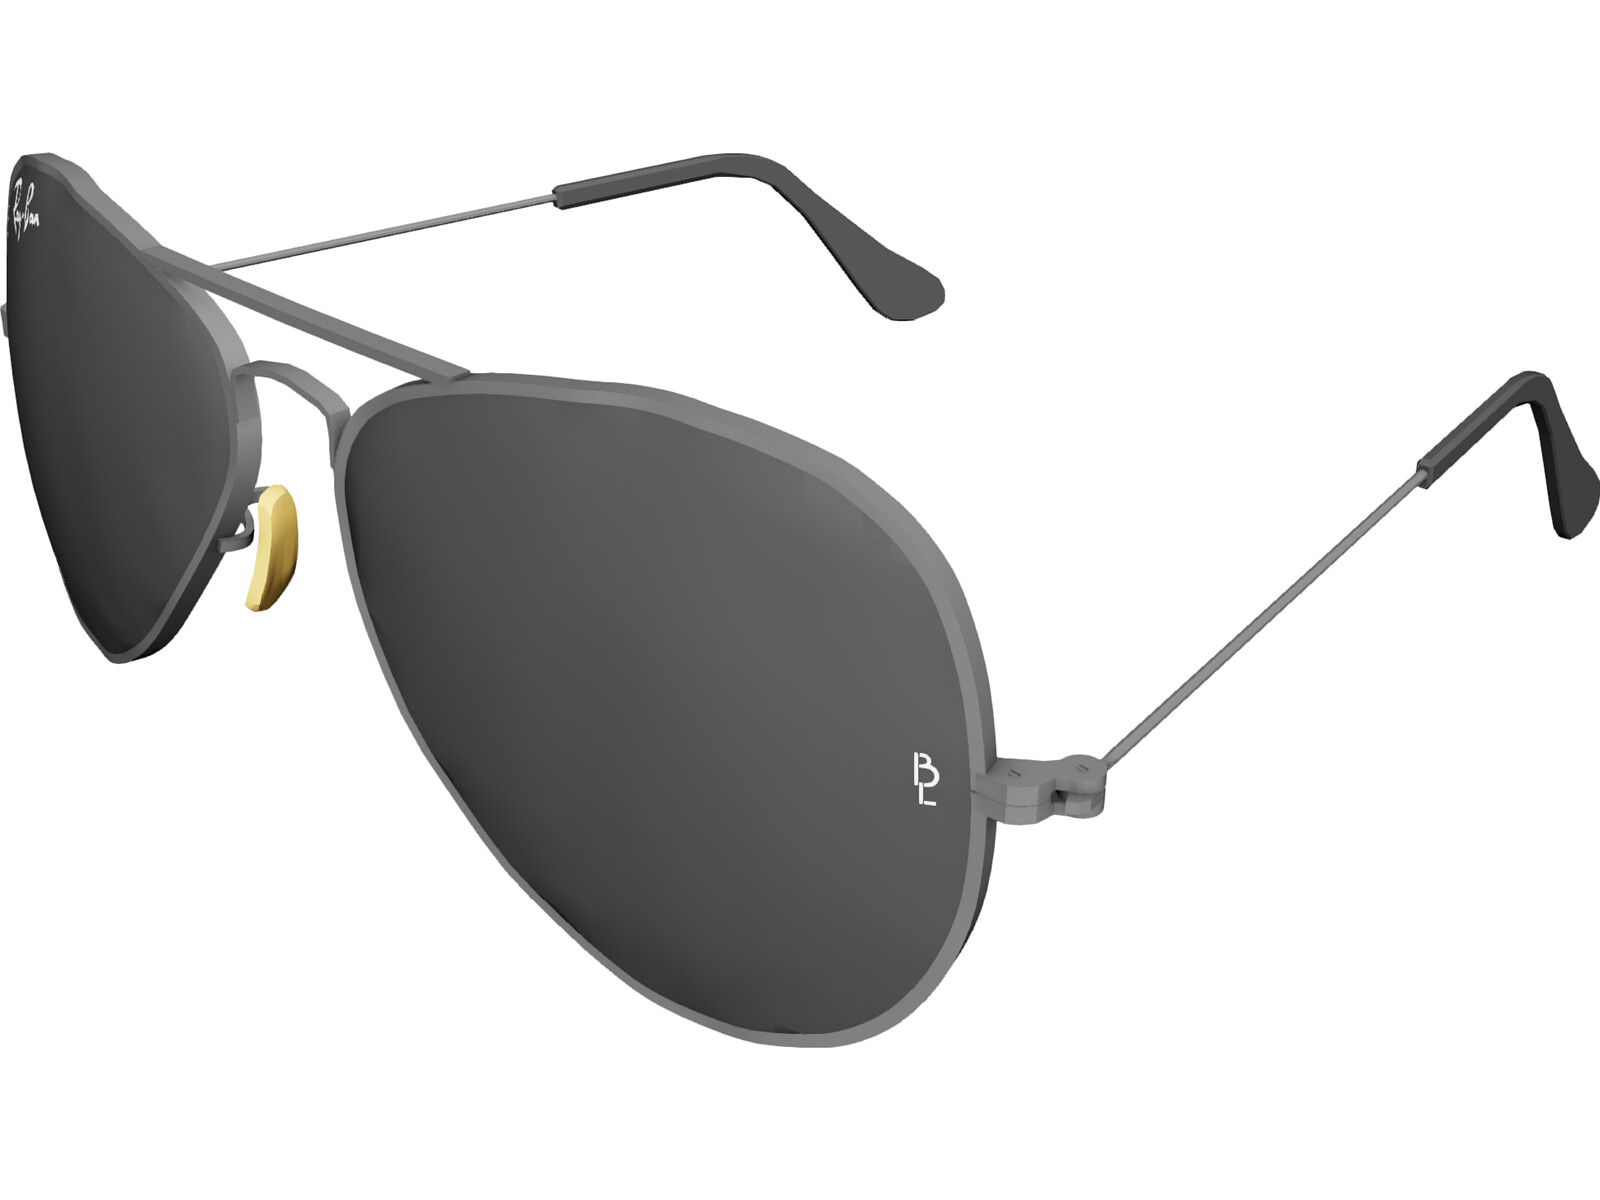 Sunglasses 3D Model